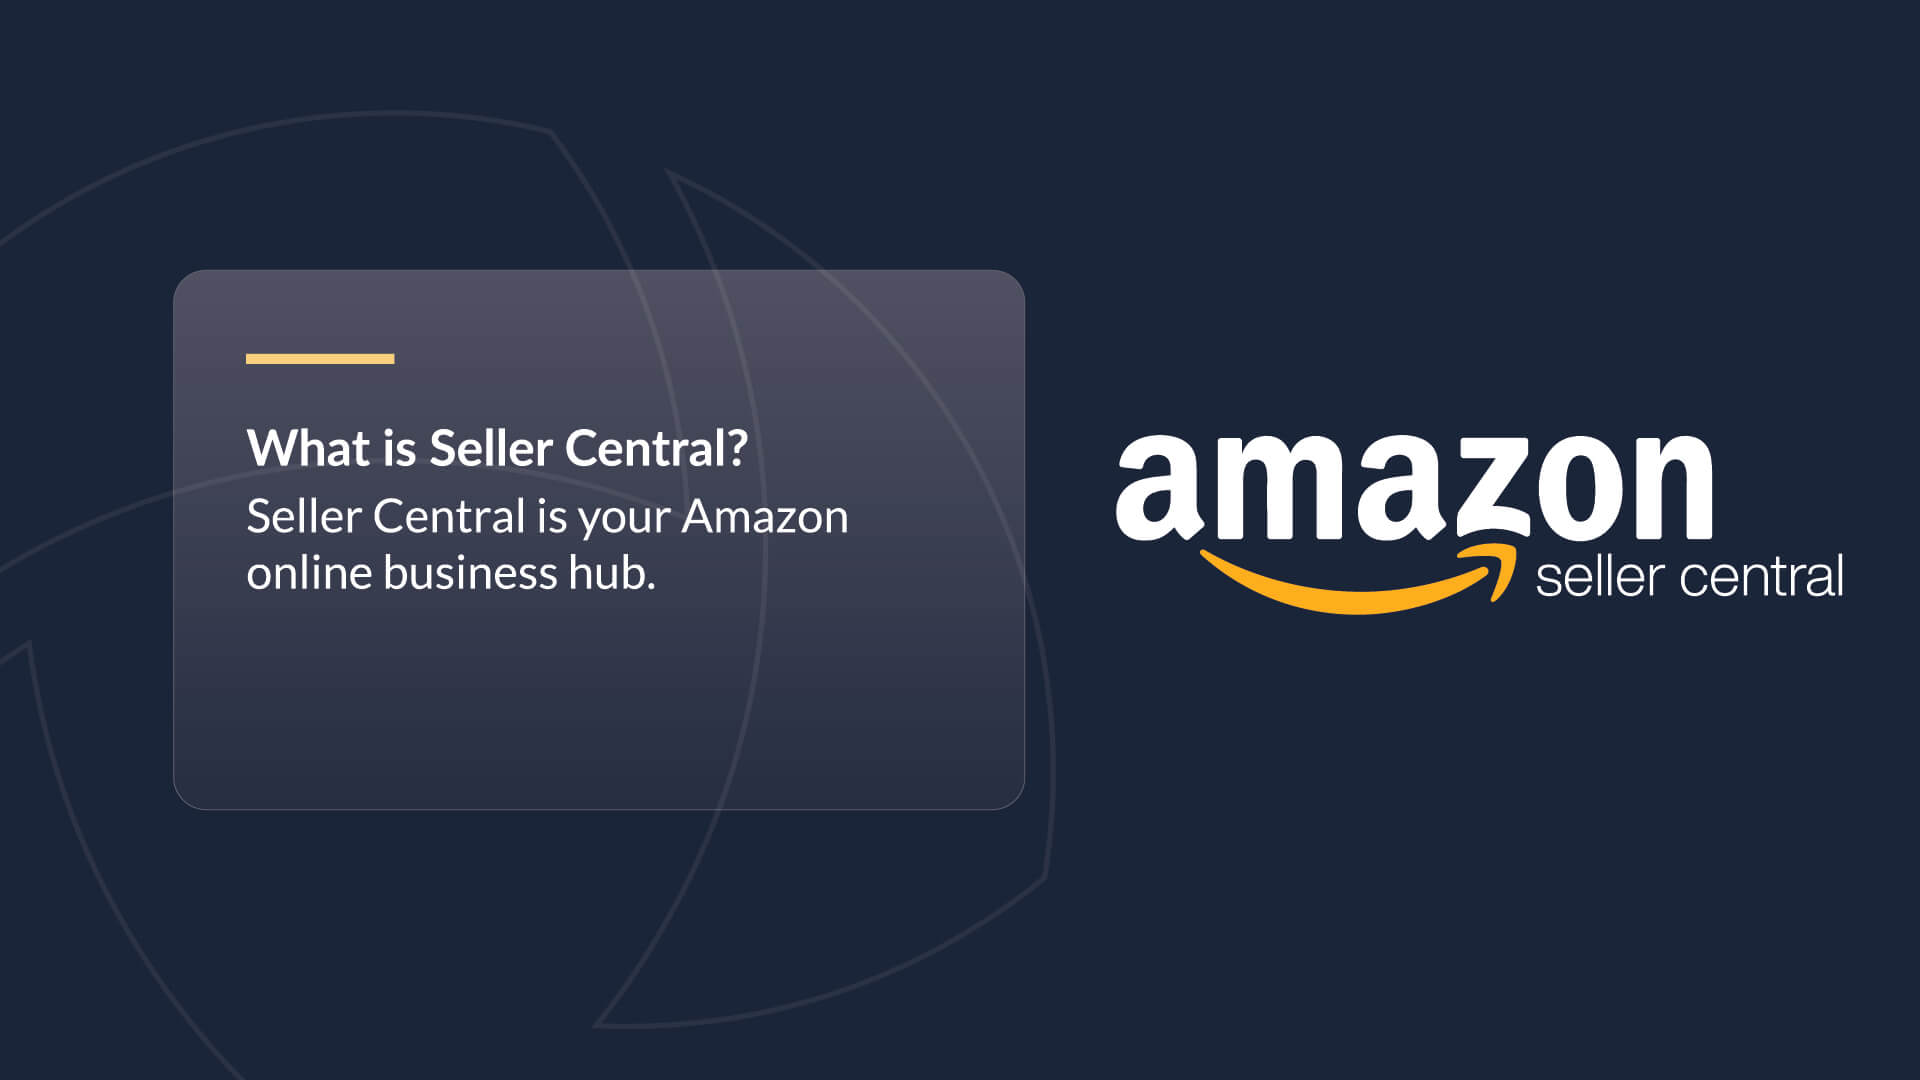 What is seller central? Seller Central is your Amazon online business hub.